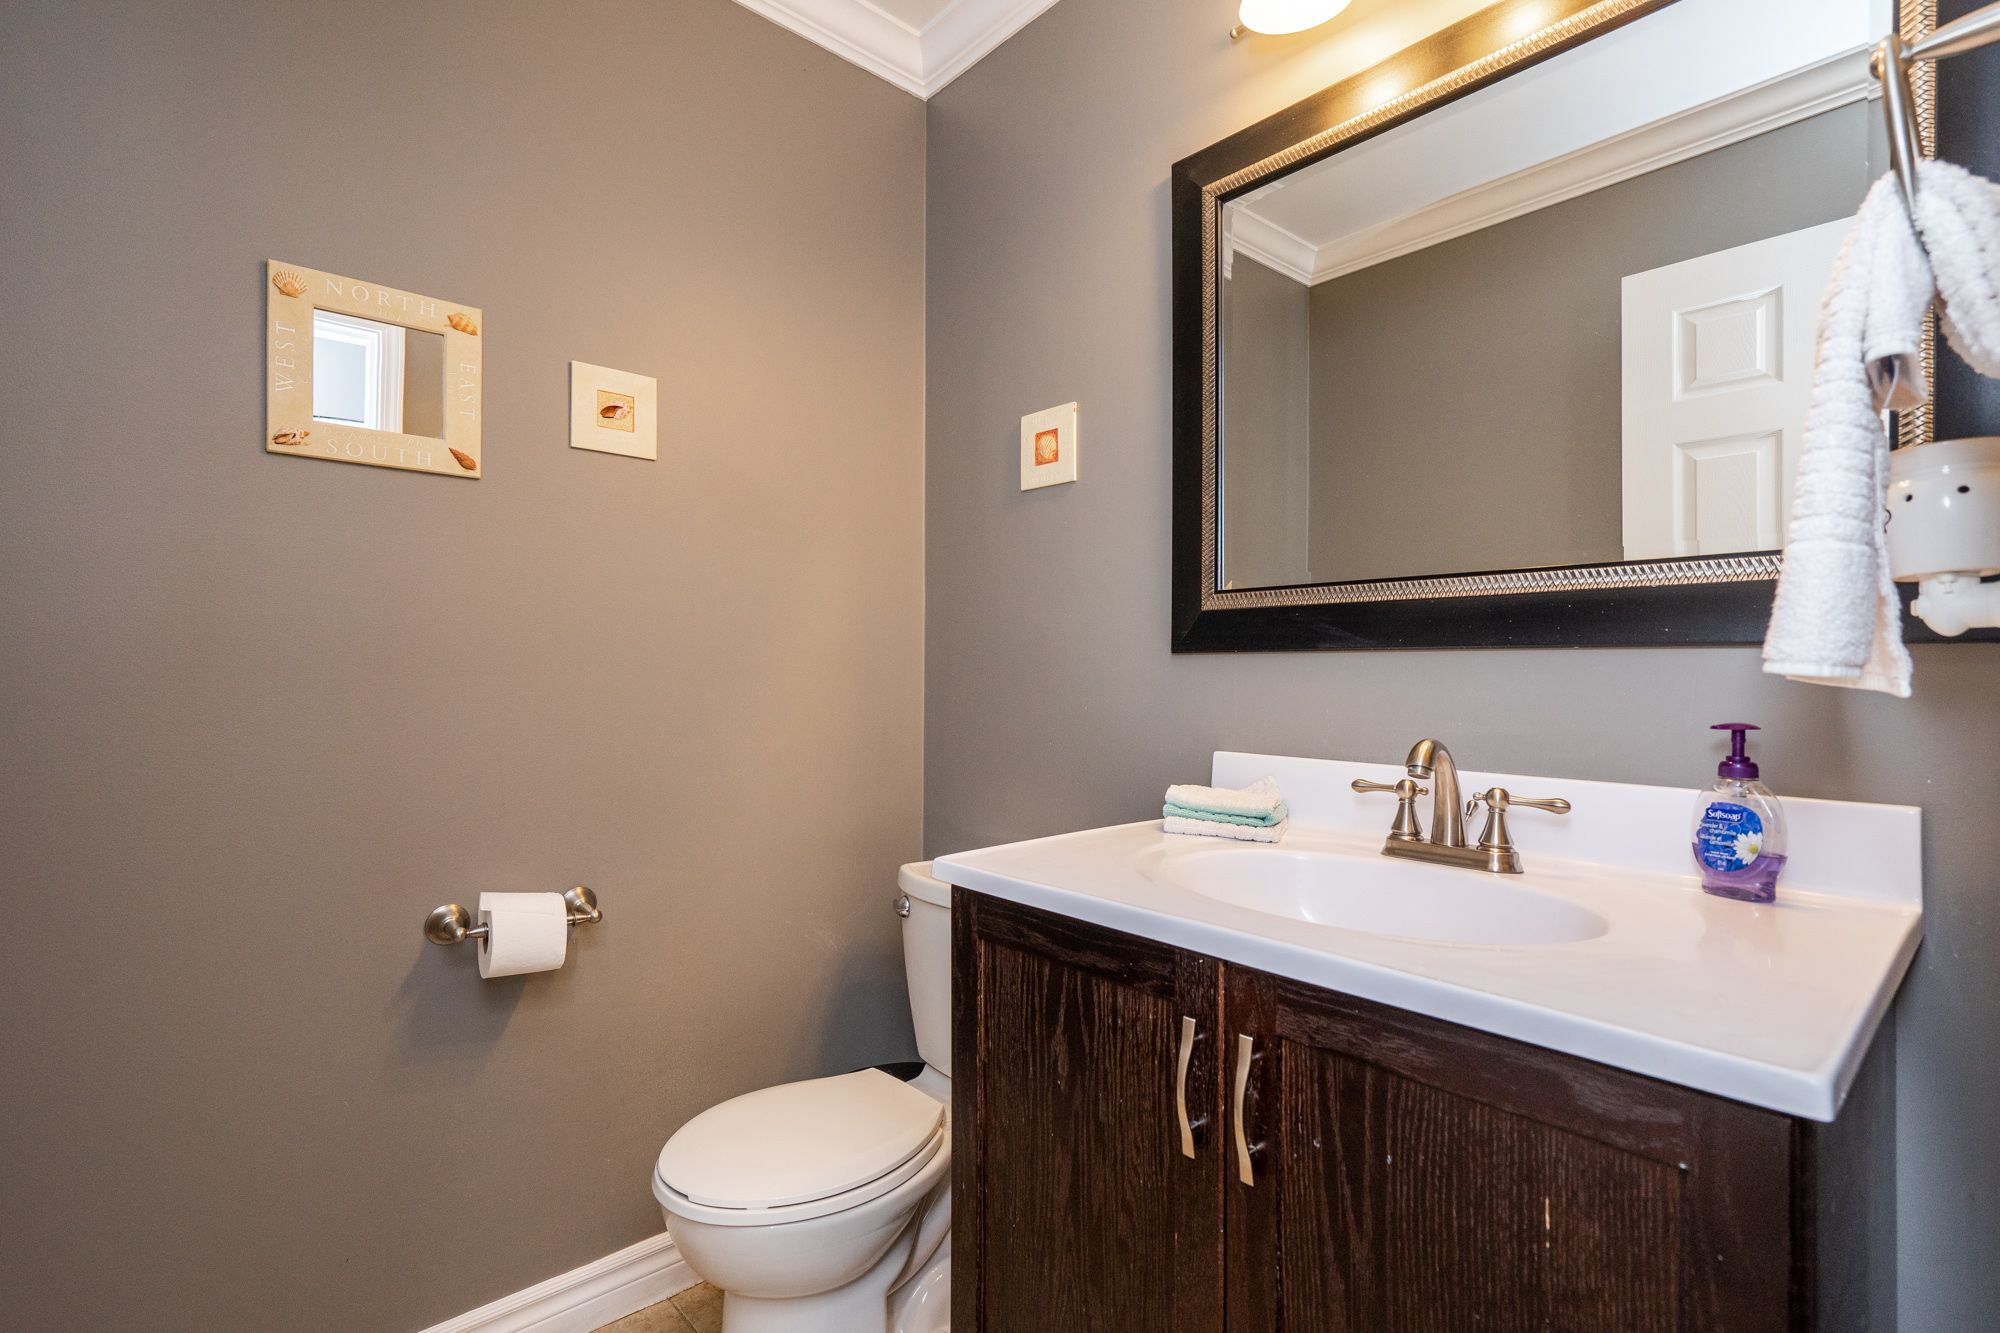 """Photo 17: Photos: 8448 213 Street in Langley: Walnut Grove House for sale in """"Forest Hills"""" : MLS®# R2259409"""